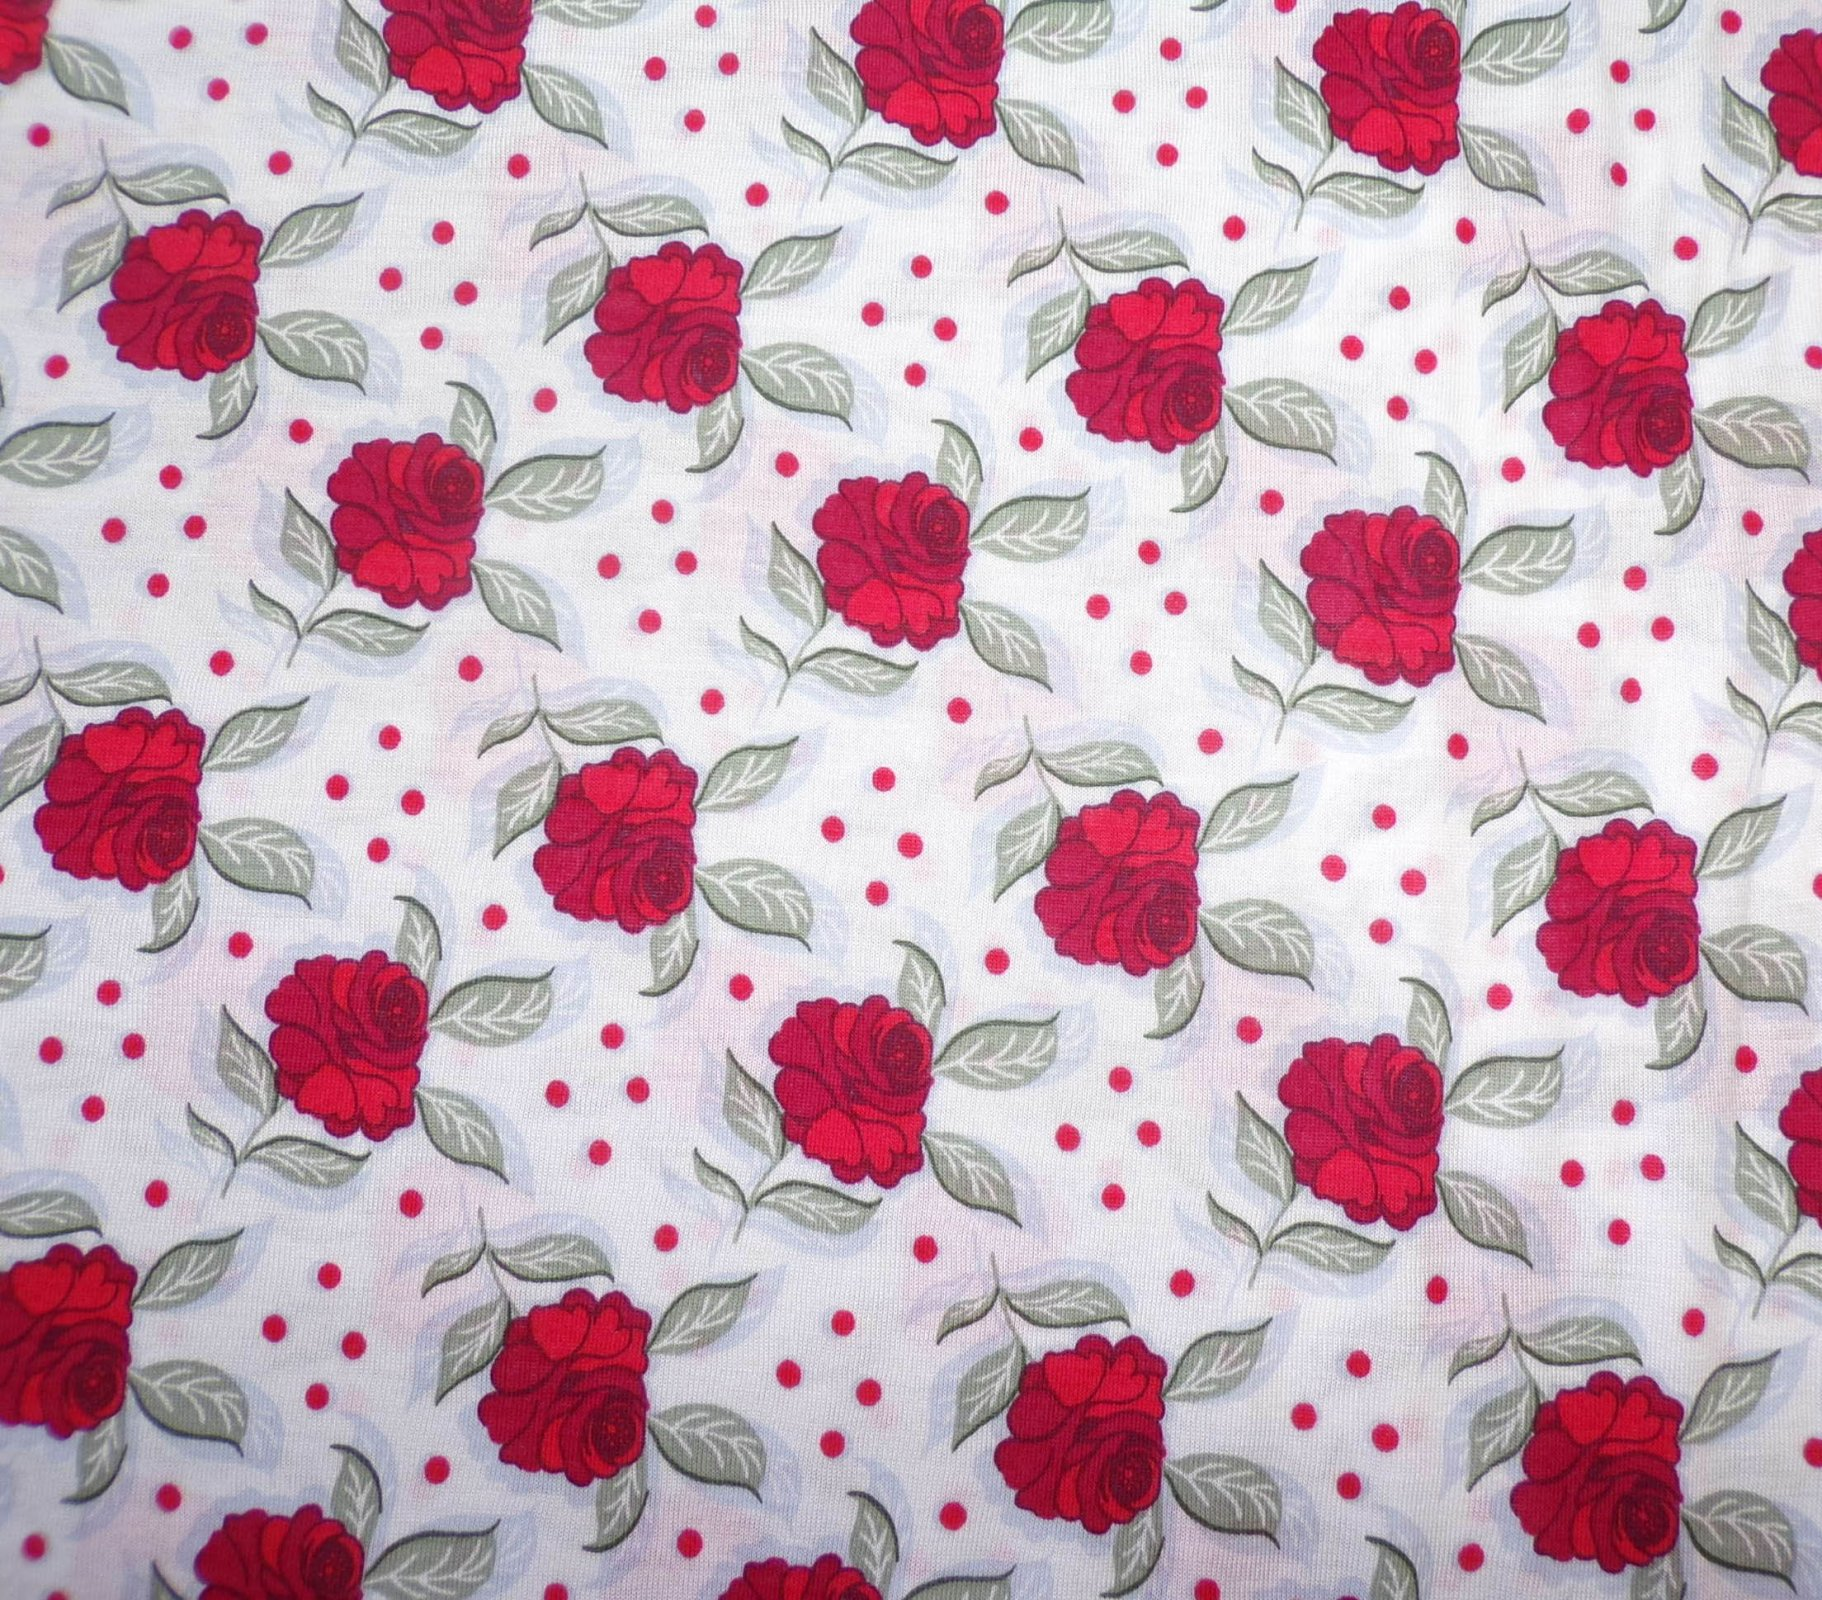 Pima Cotton Jersey - White with Red Roses